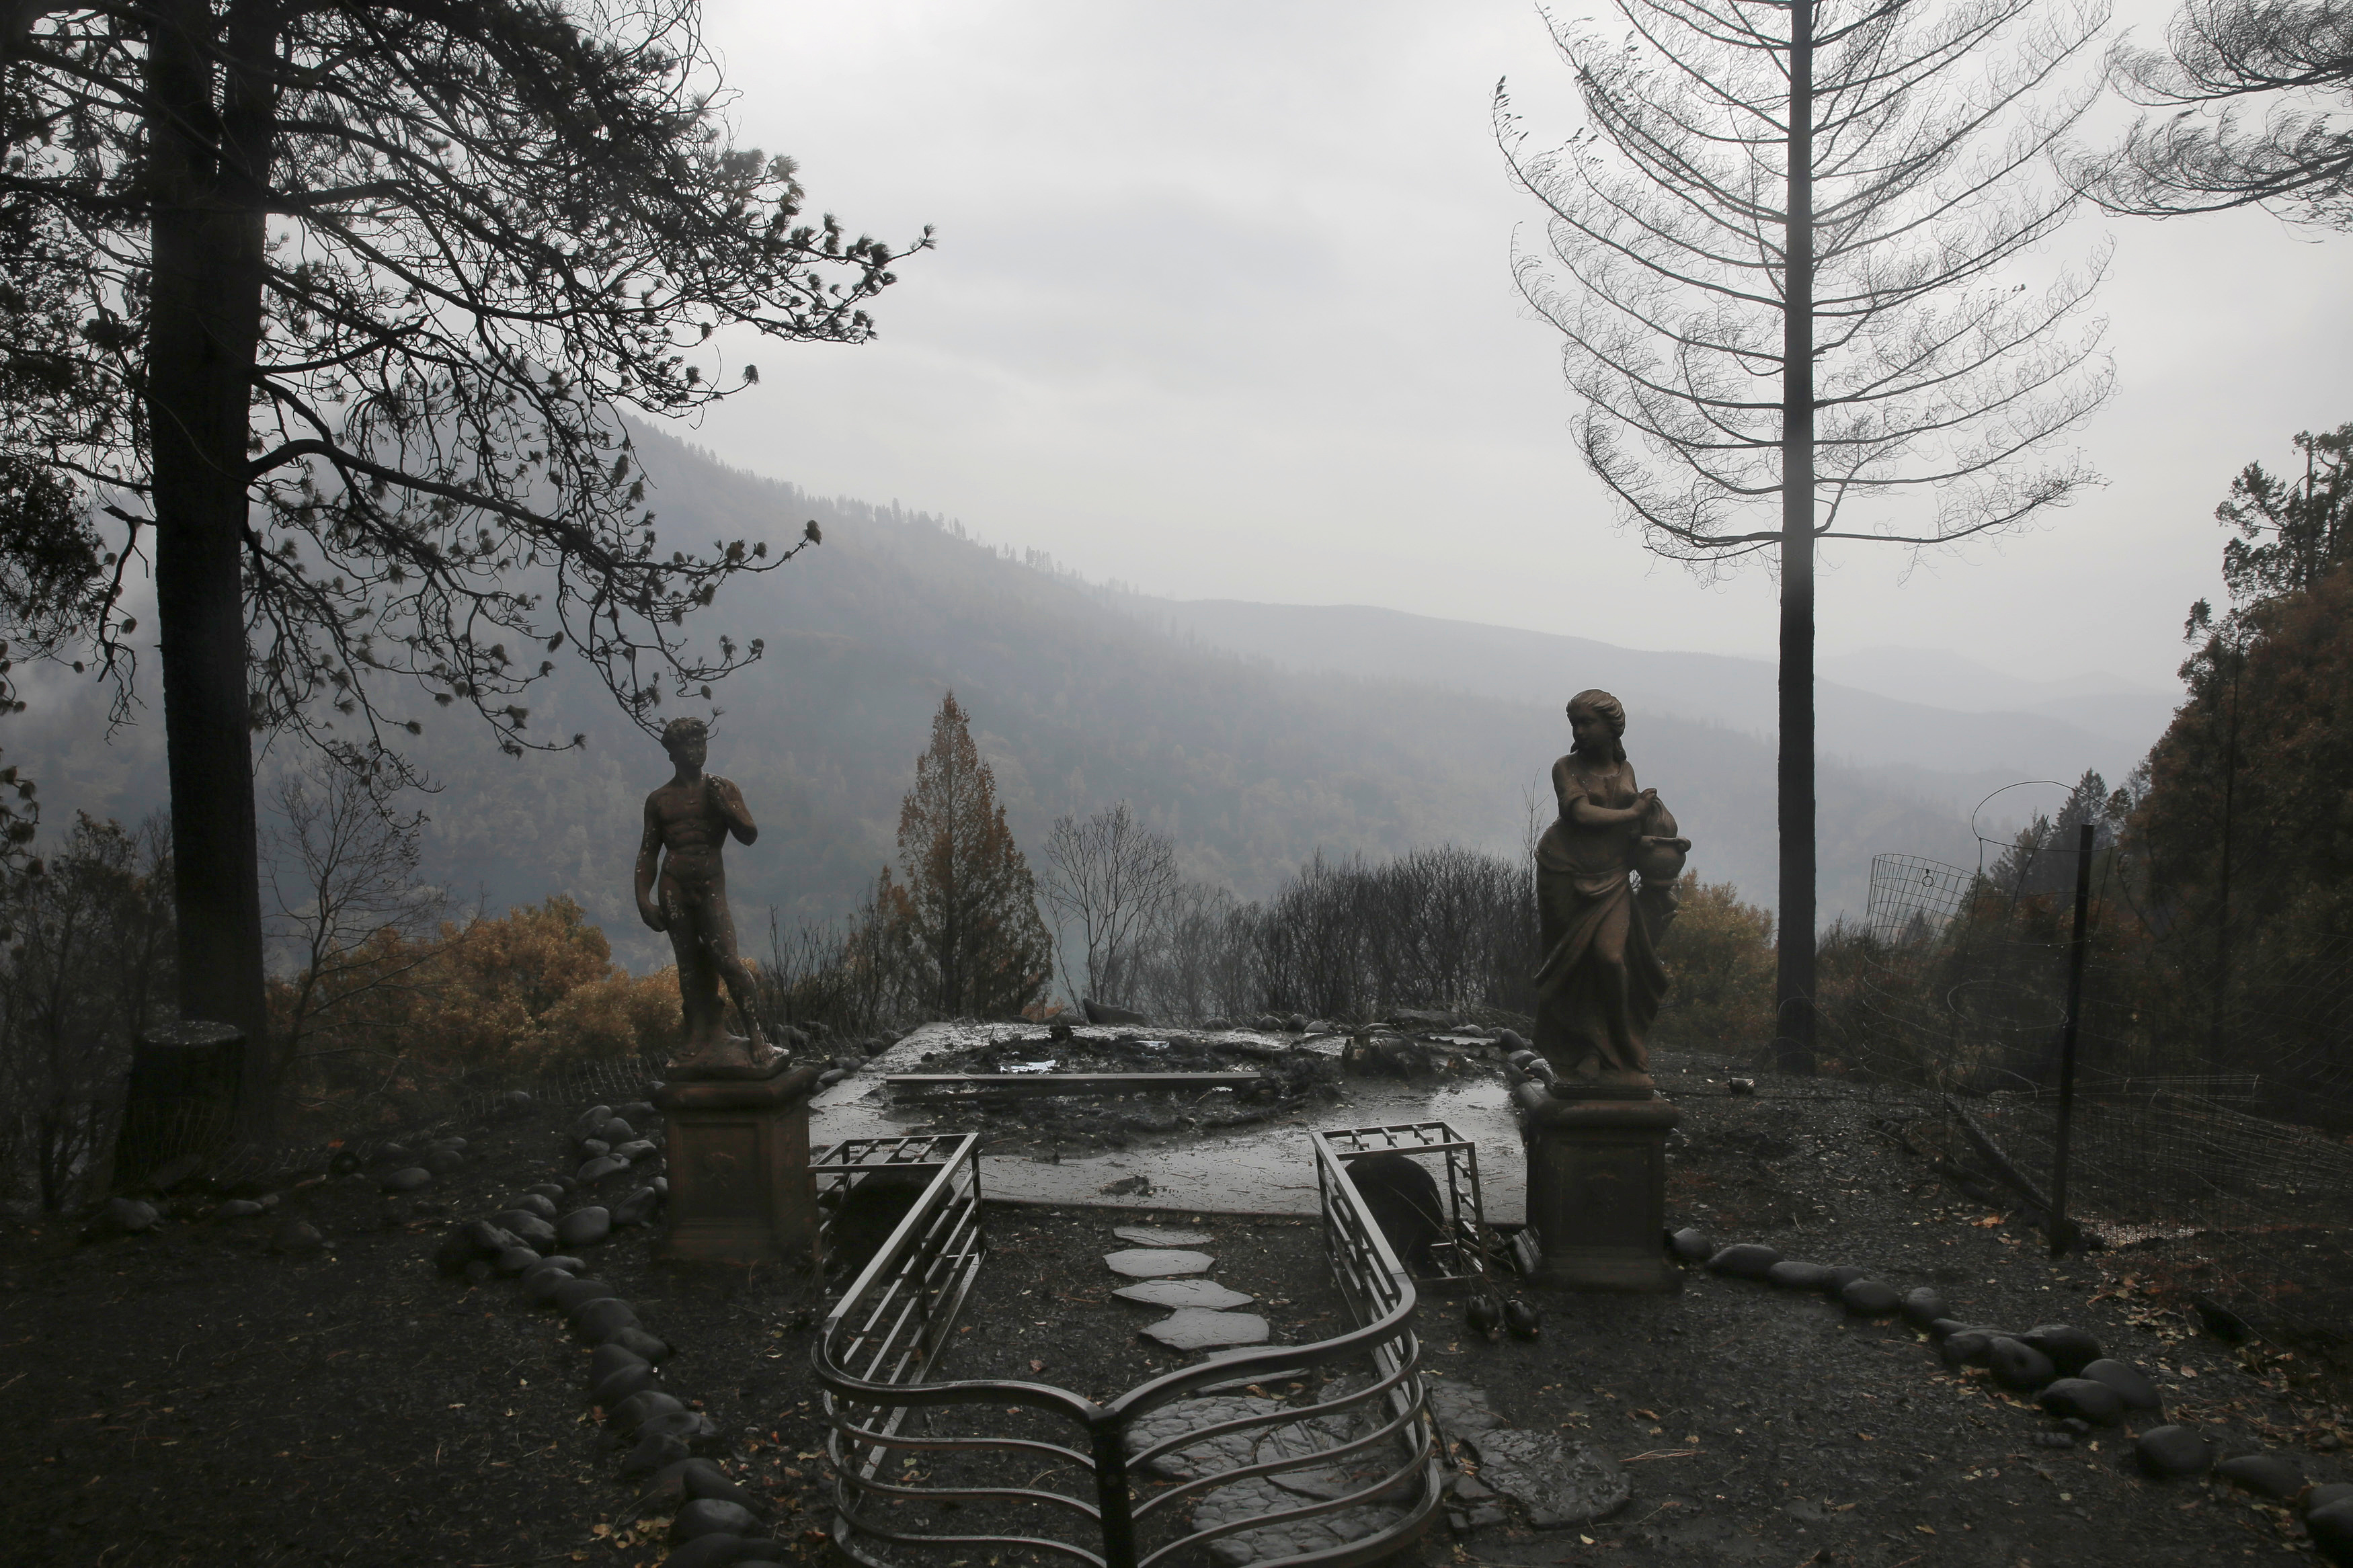 FILE PHOTO: Statues are seen on a property damaged by the Camp Fire in Paradise, California, U.S. November 21, 2018. REUTERS/Elijah Nouvelage